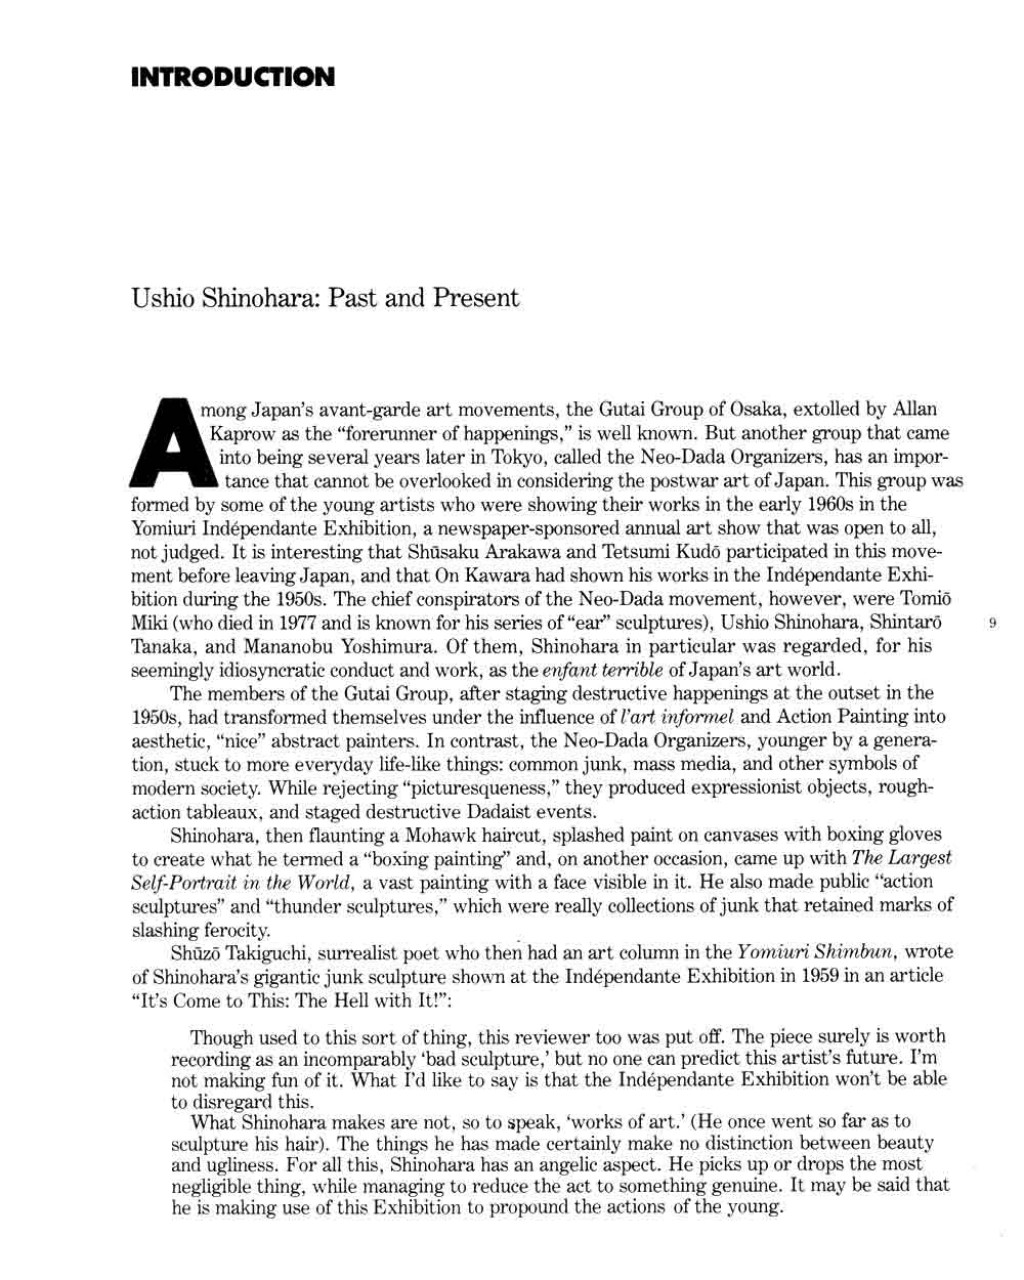 001 Ushio Shinohara Past And Present Essay Pg 1 Citation Dreaded Mla In Text Generator Proper Format Large